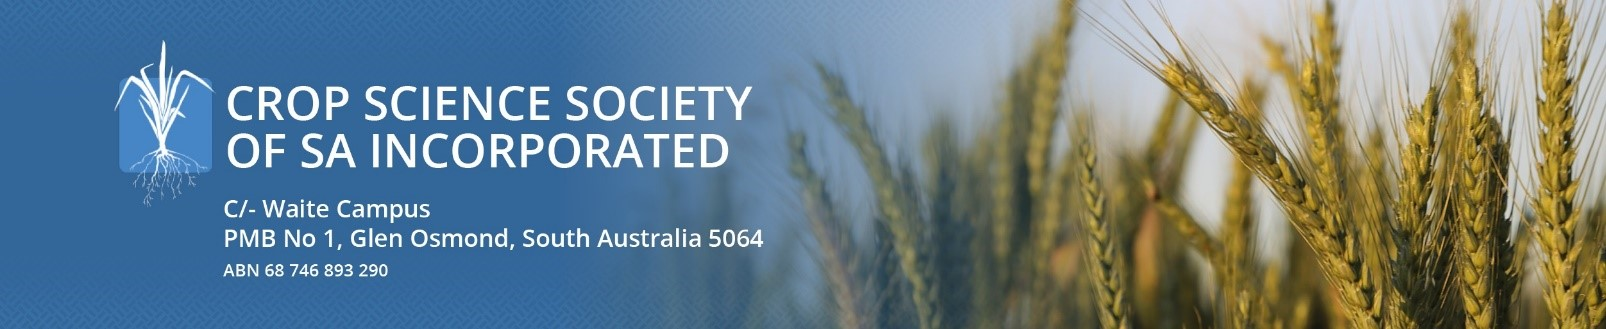 Crop Science Society of SA